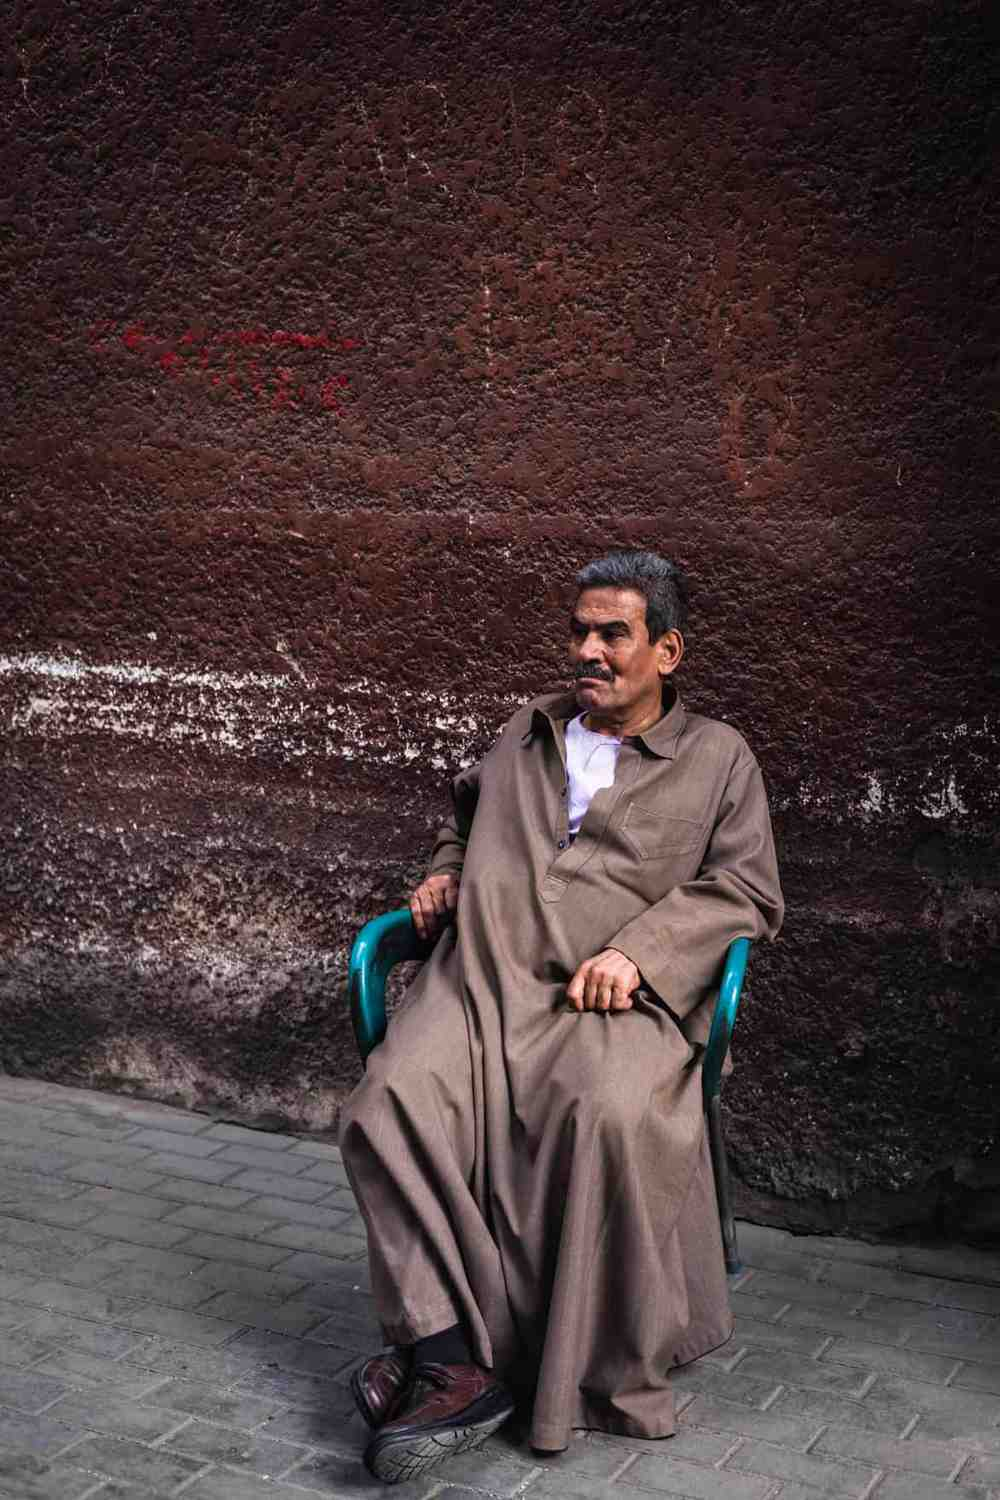 Man sitting in chair on the sidewalk in Cairo.